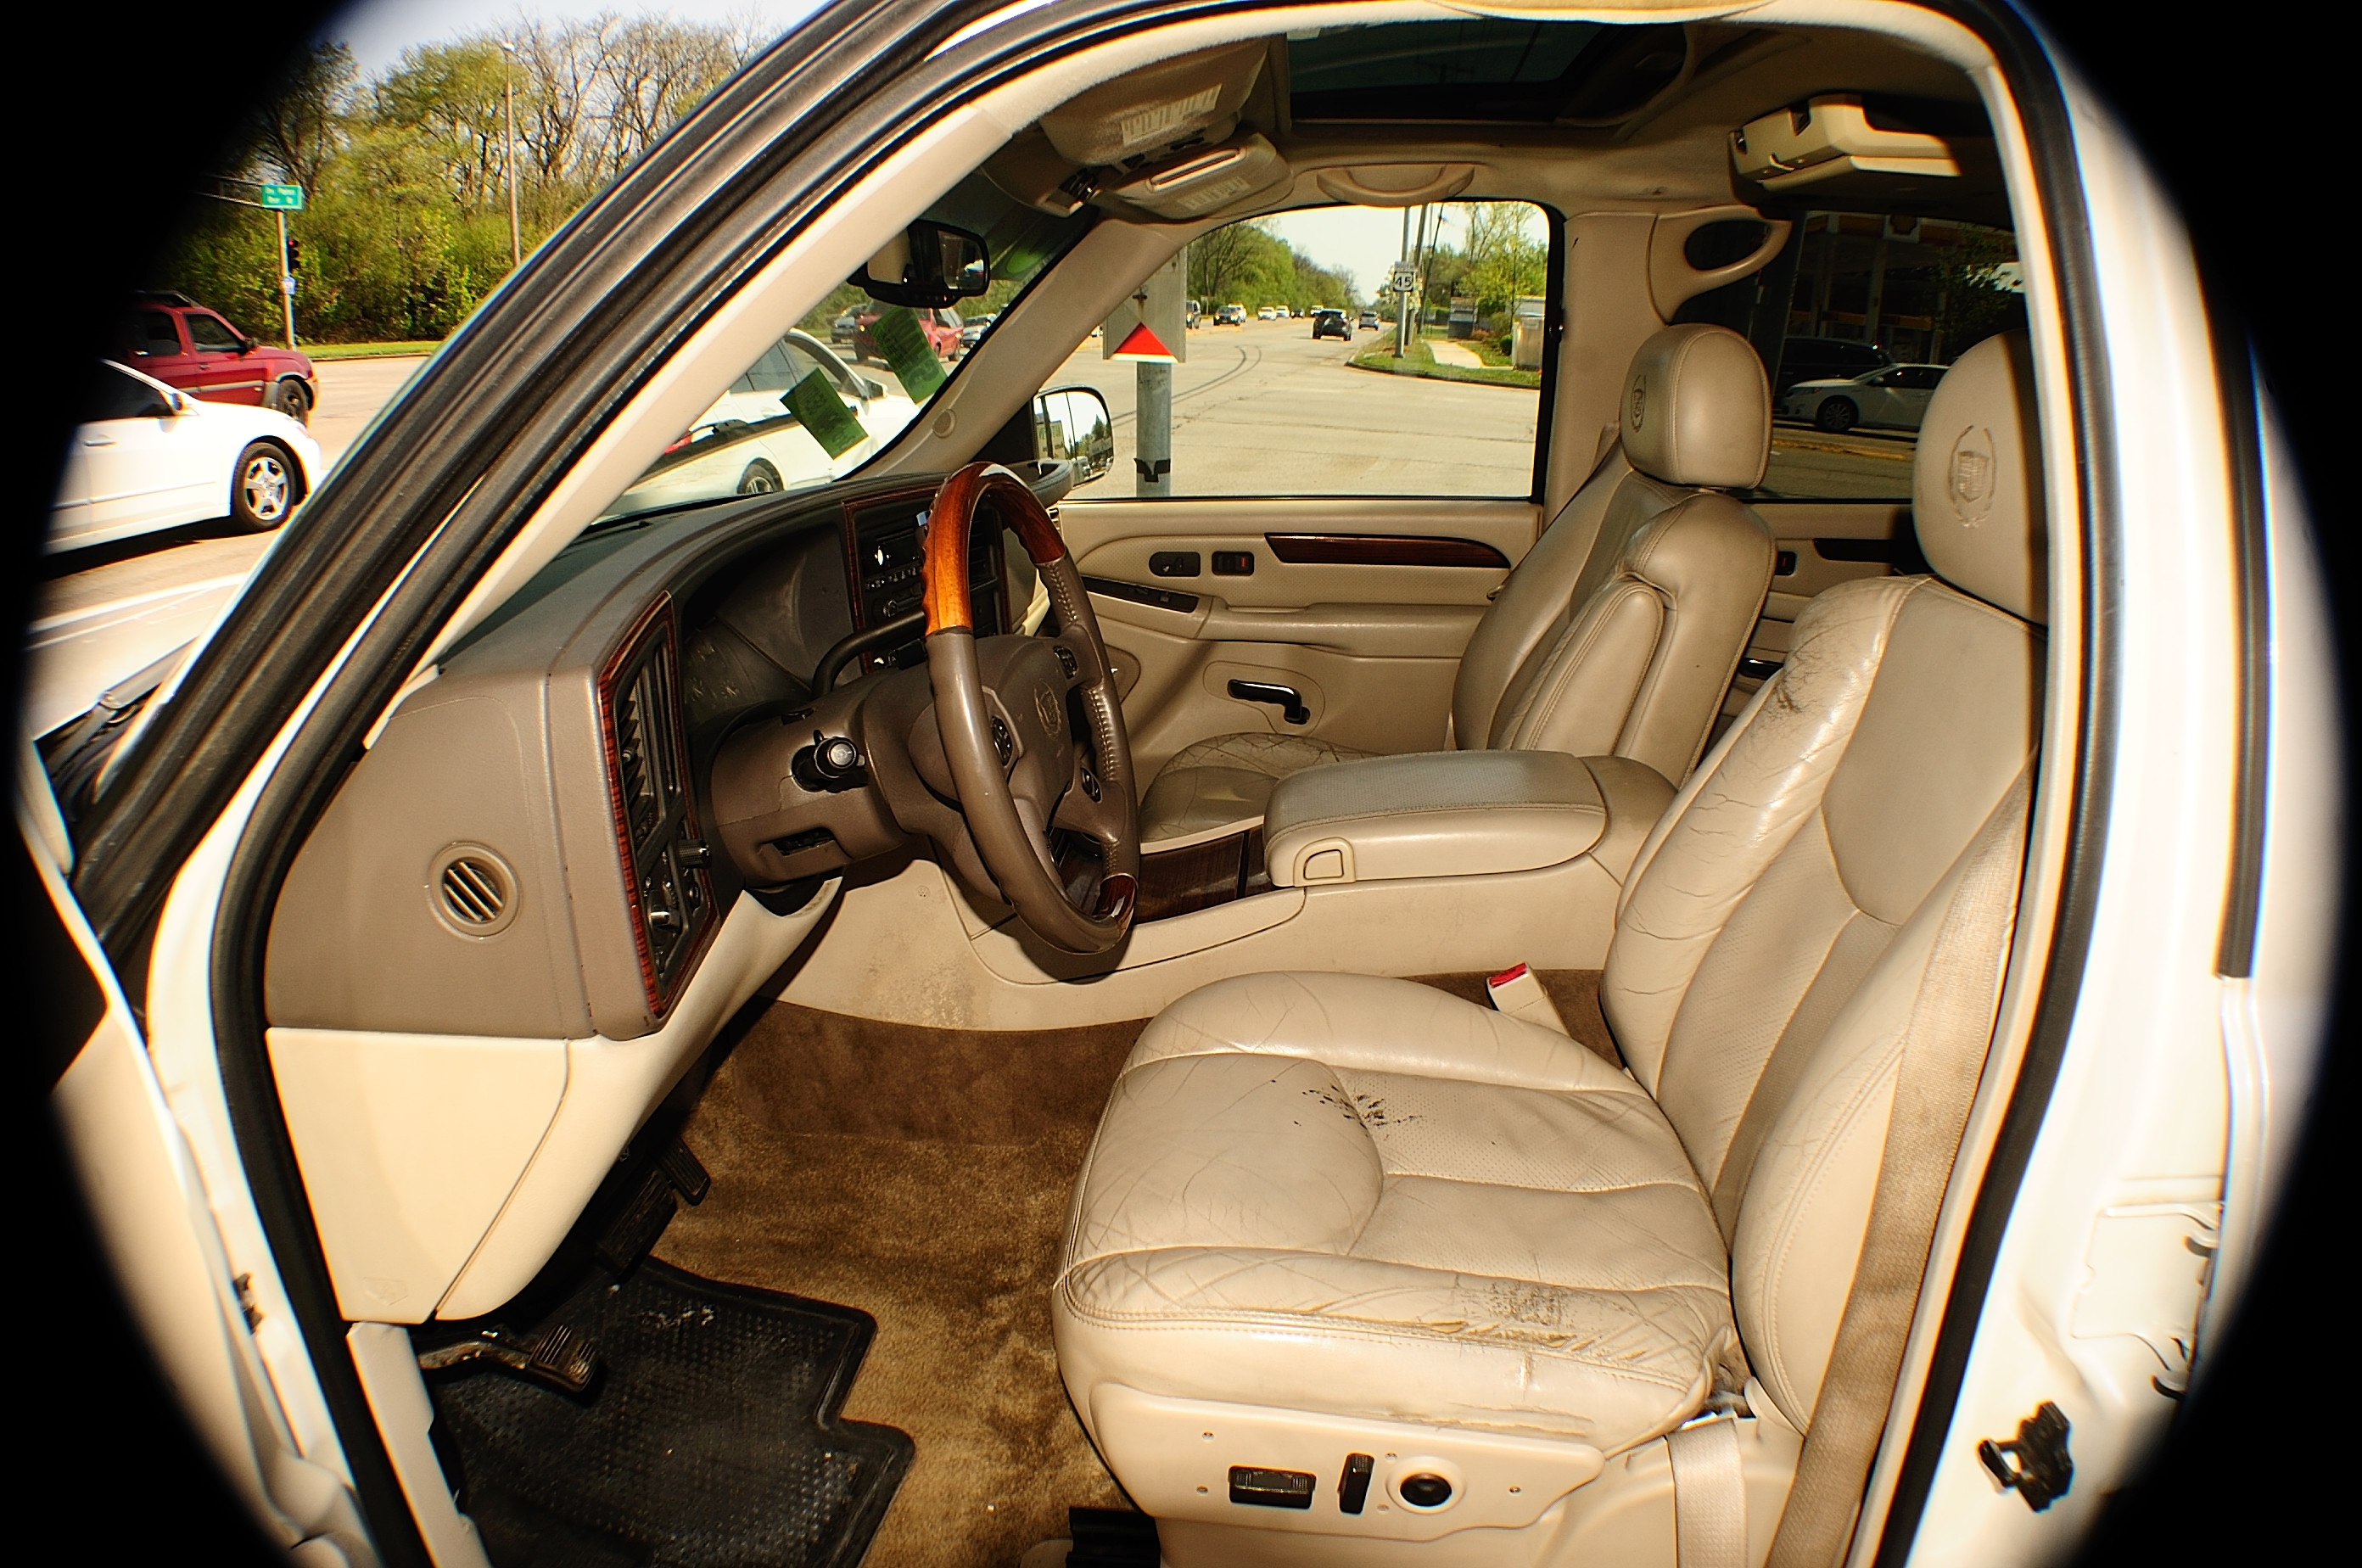 2003 Cadillac Escalade White TV Used SUV car sale Streamwood Tinley Park Wheeling Woodridge